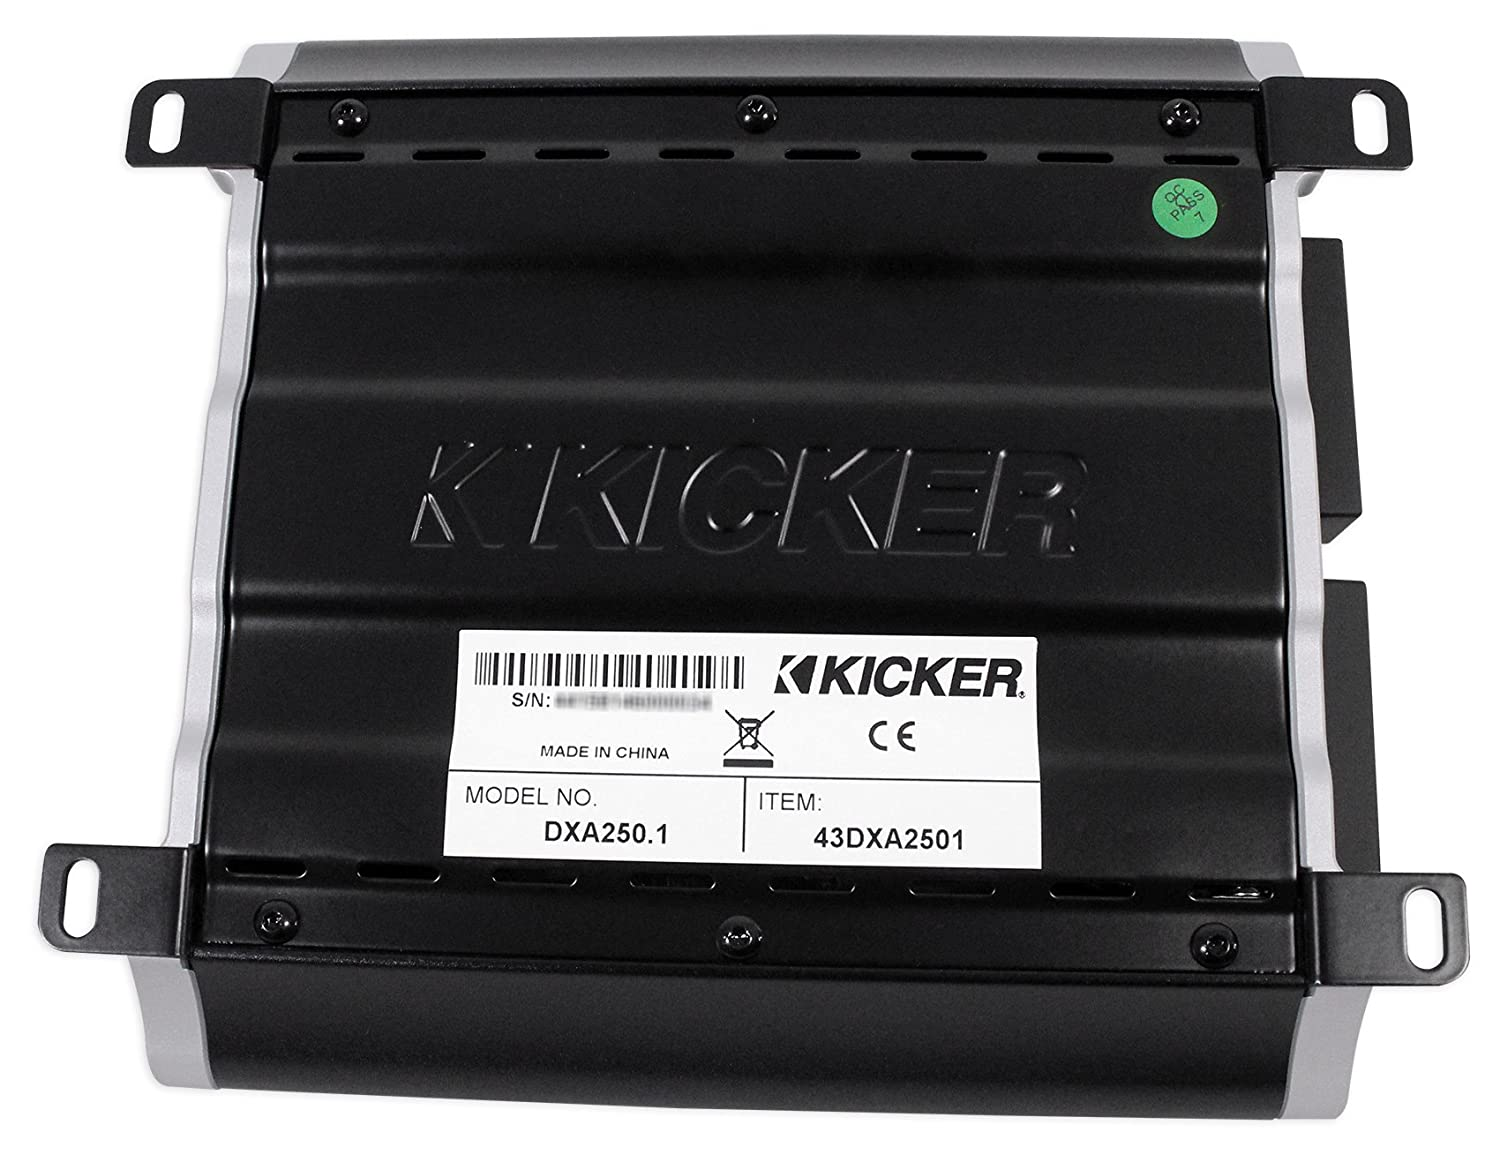 Amazon.com: Kicker 43DXA2501 250 Watt RMS Mono Class D Car Amplifier Amp DXA250.1+Headphones: Car Electronics